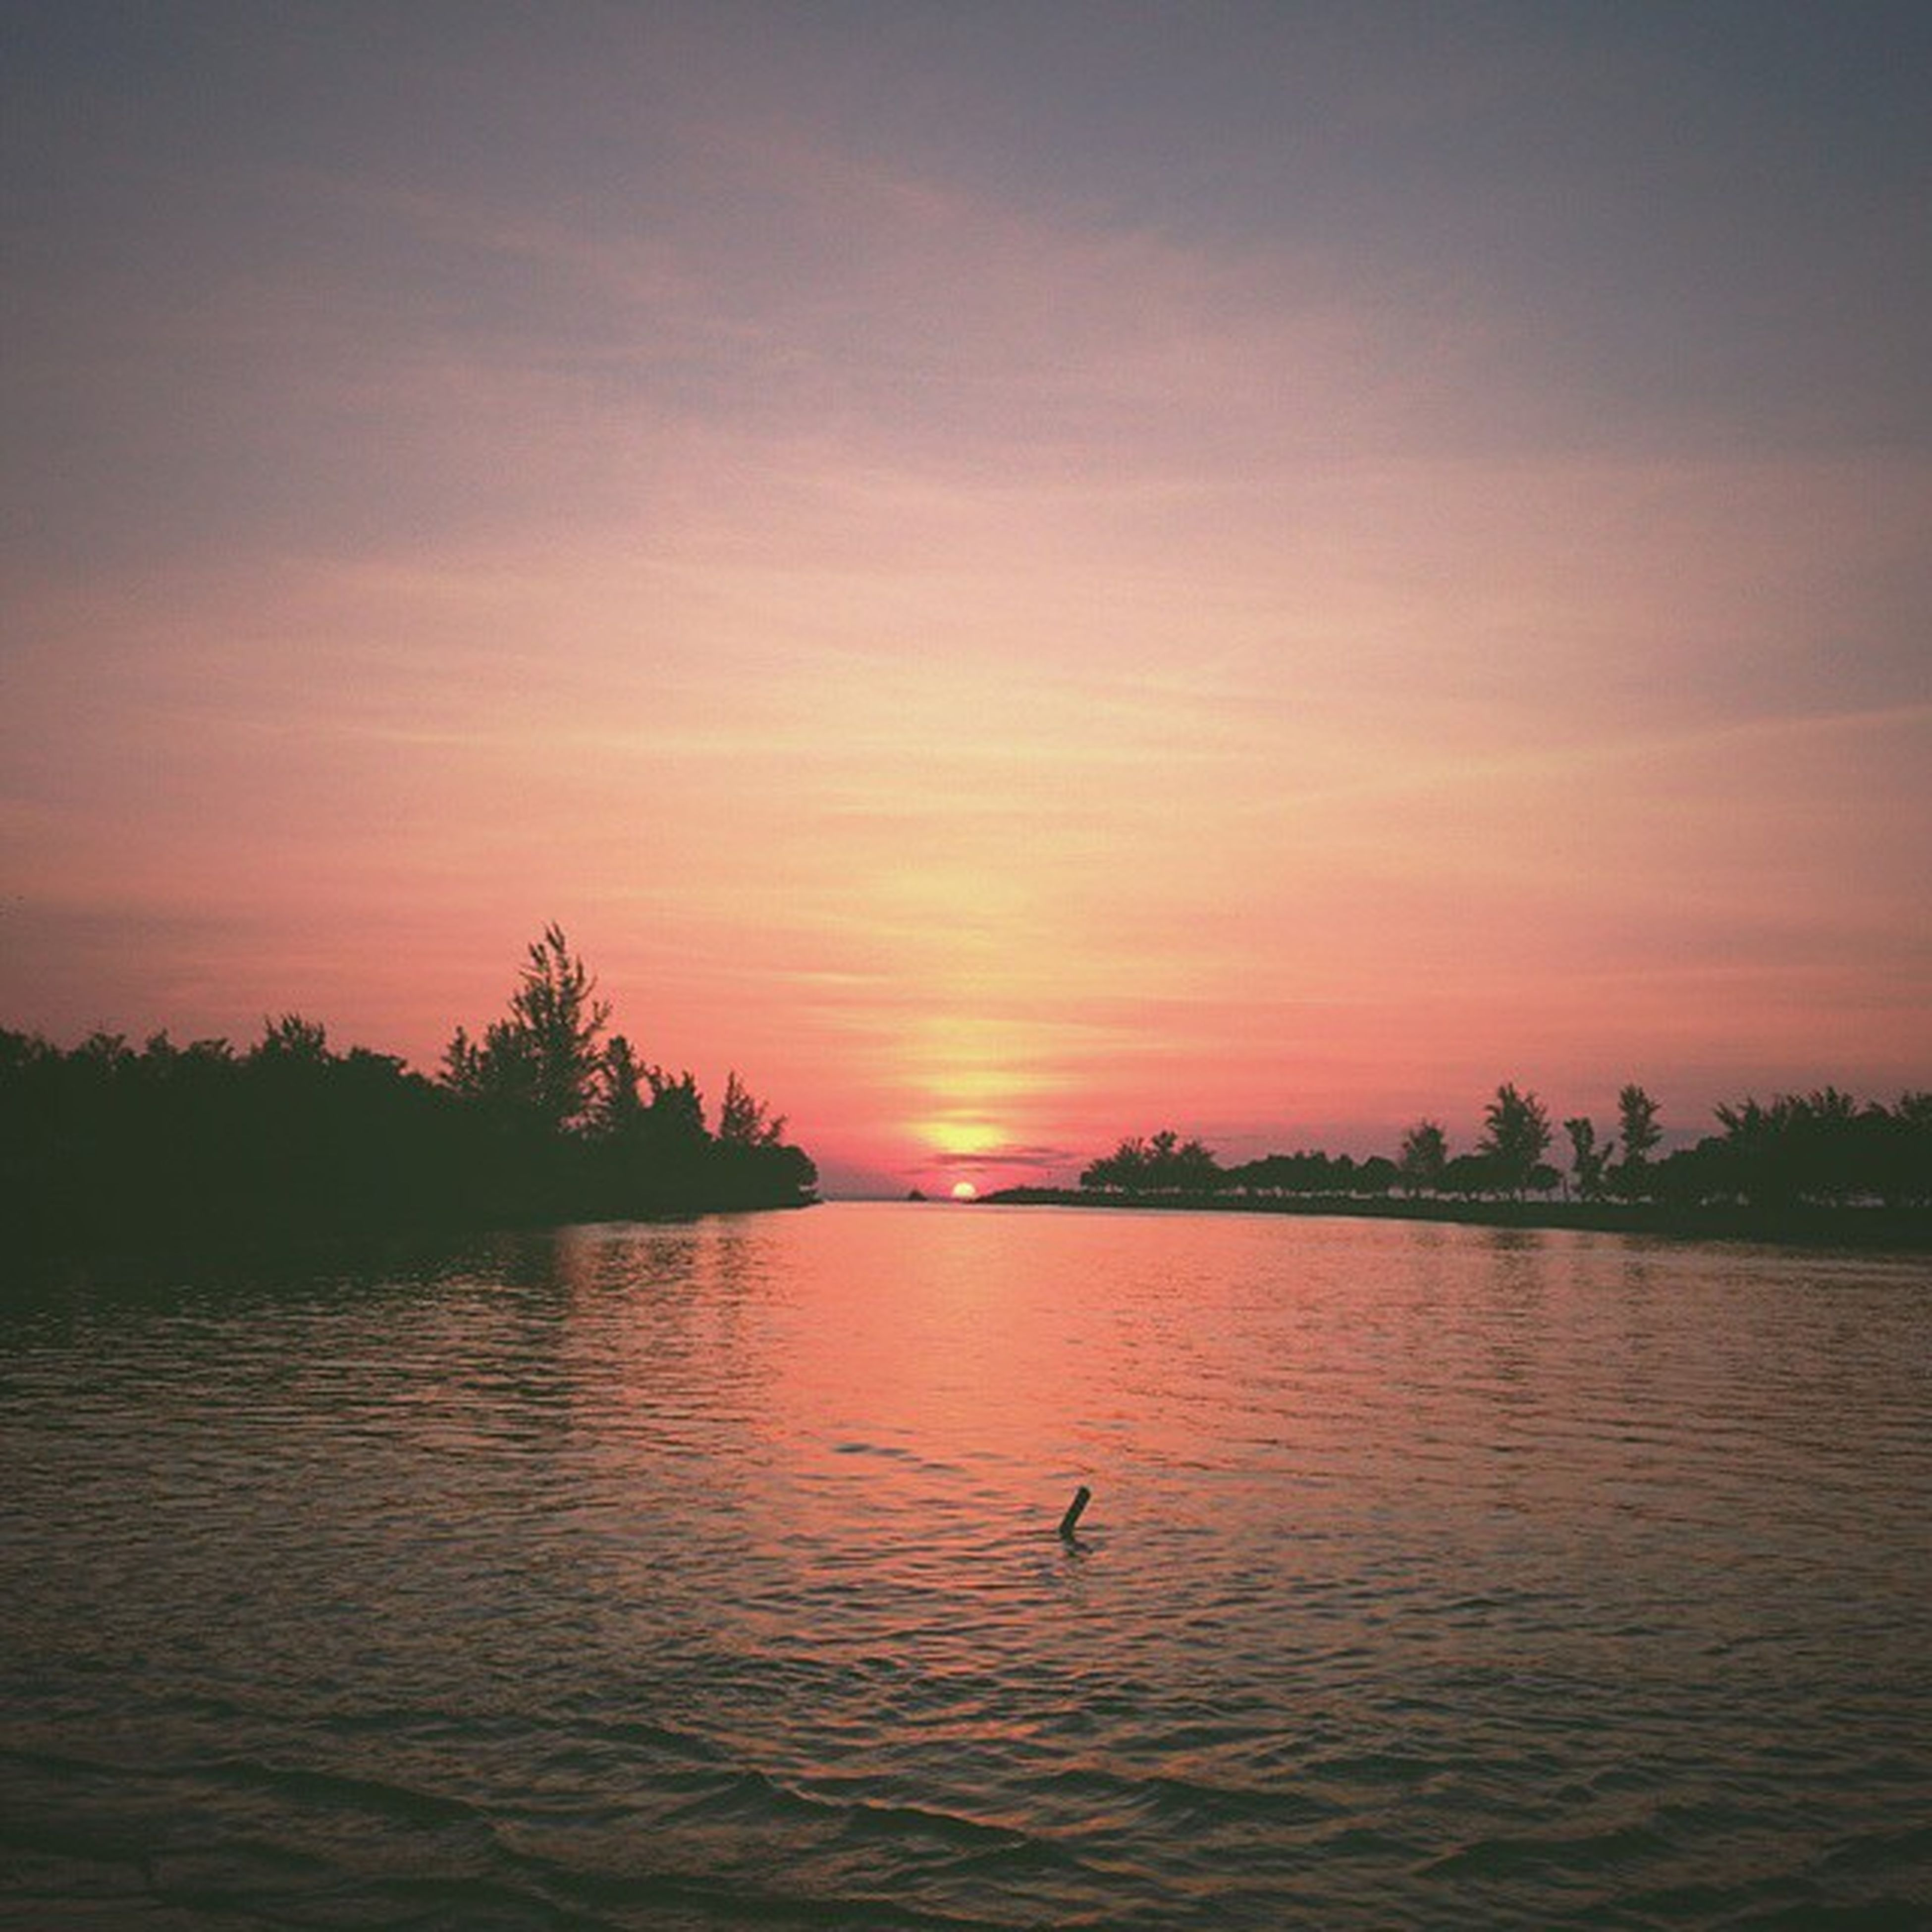 sunset, water, tranquil scene, scenics, orange color, silhouette, tranquility, sky, beauty in nature, waterfront, reflection, idyllic, nature, lake, sun, tree, cloud - sky, rippled, bird, cloud